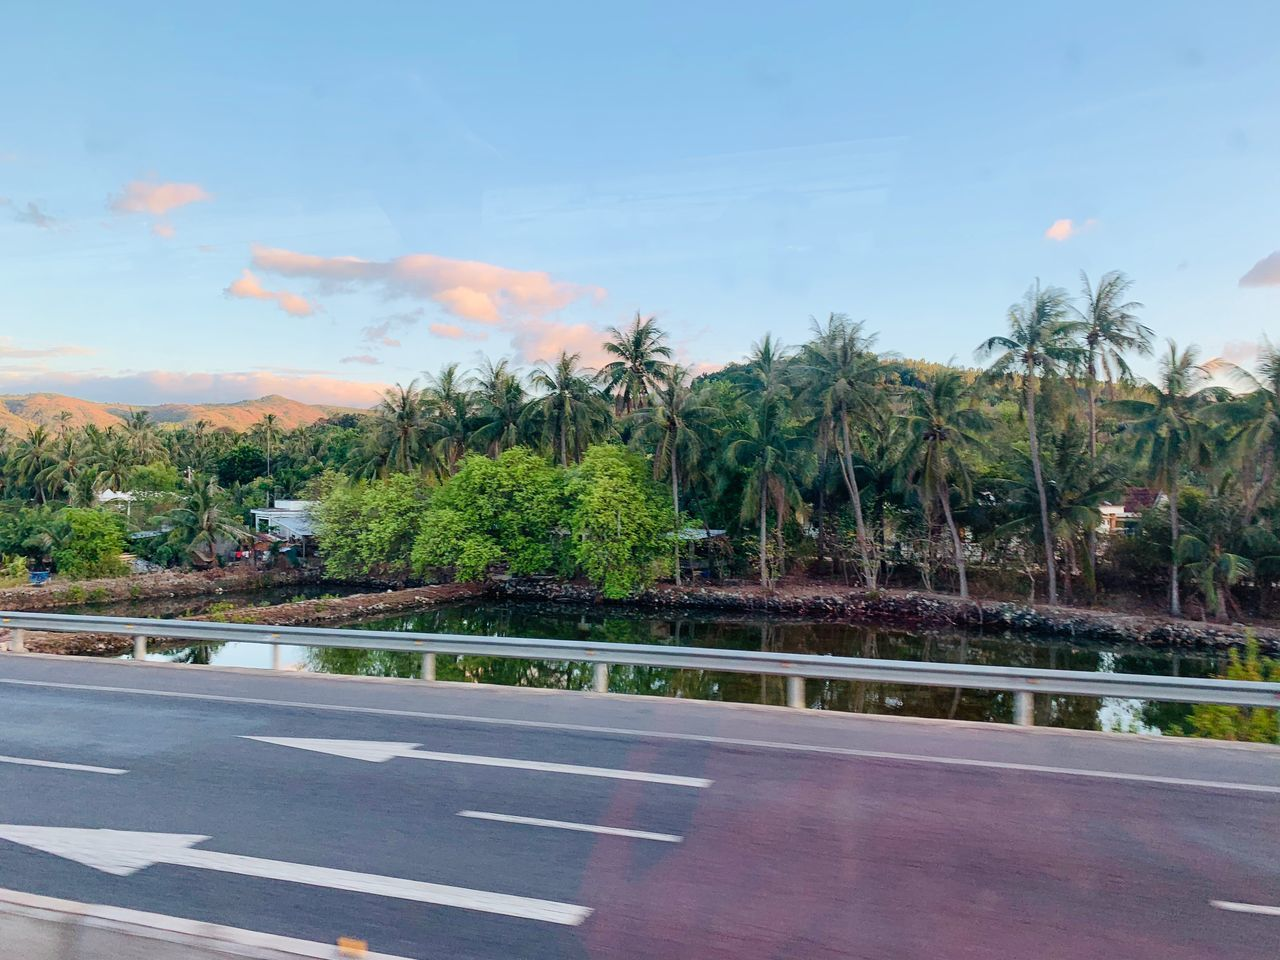 tree, plant, sky, nature, road, symbol, no people, cloud - sky, transportation, marking, road marking, growth, palm tree, outdoors, day, tropical climate, sign, land, green color, city